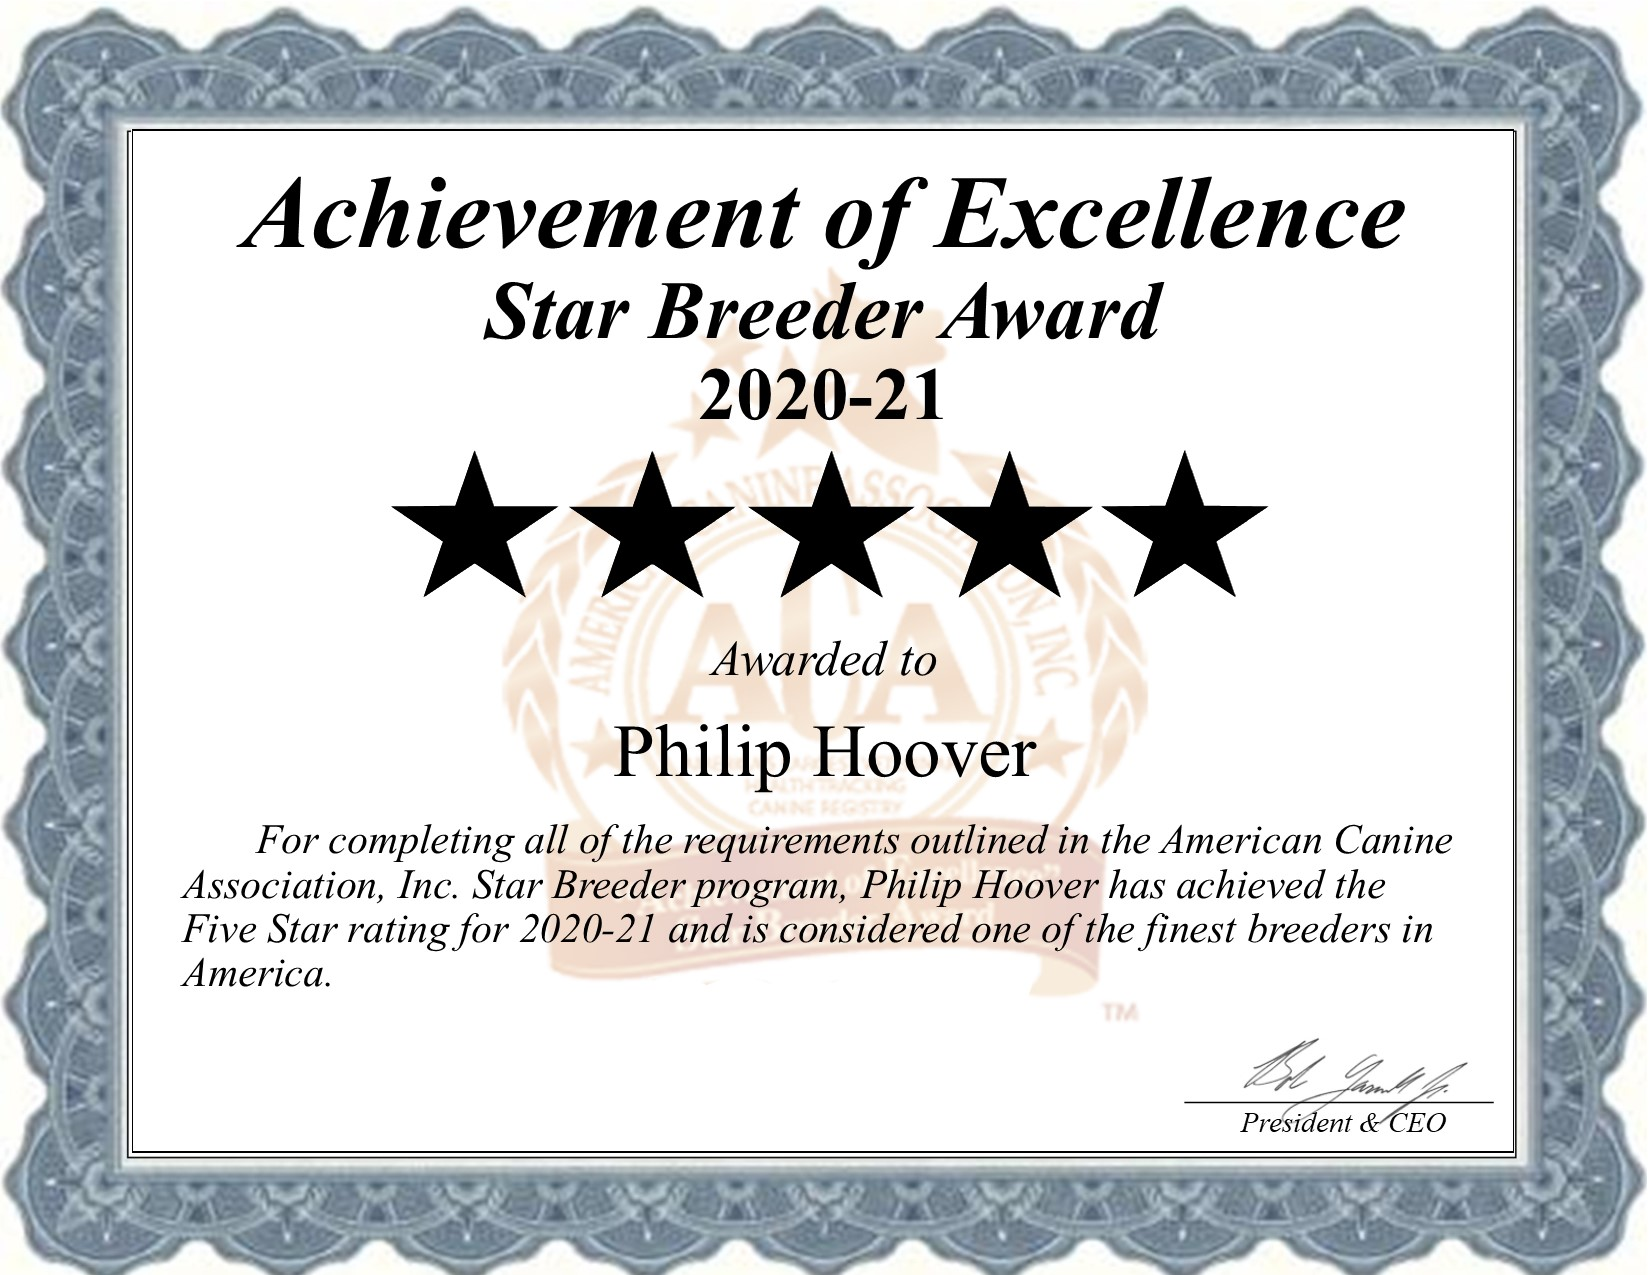 philip, hoover, dog, breeder, philip-hoover, dog-breeder, kennel, kennels, star, certificate, dog, Memphis, mo, missouri, usda, no,  43-A-5673, 43a5673, breeding, pup, puppy, mill, puppymill, dogs, in